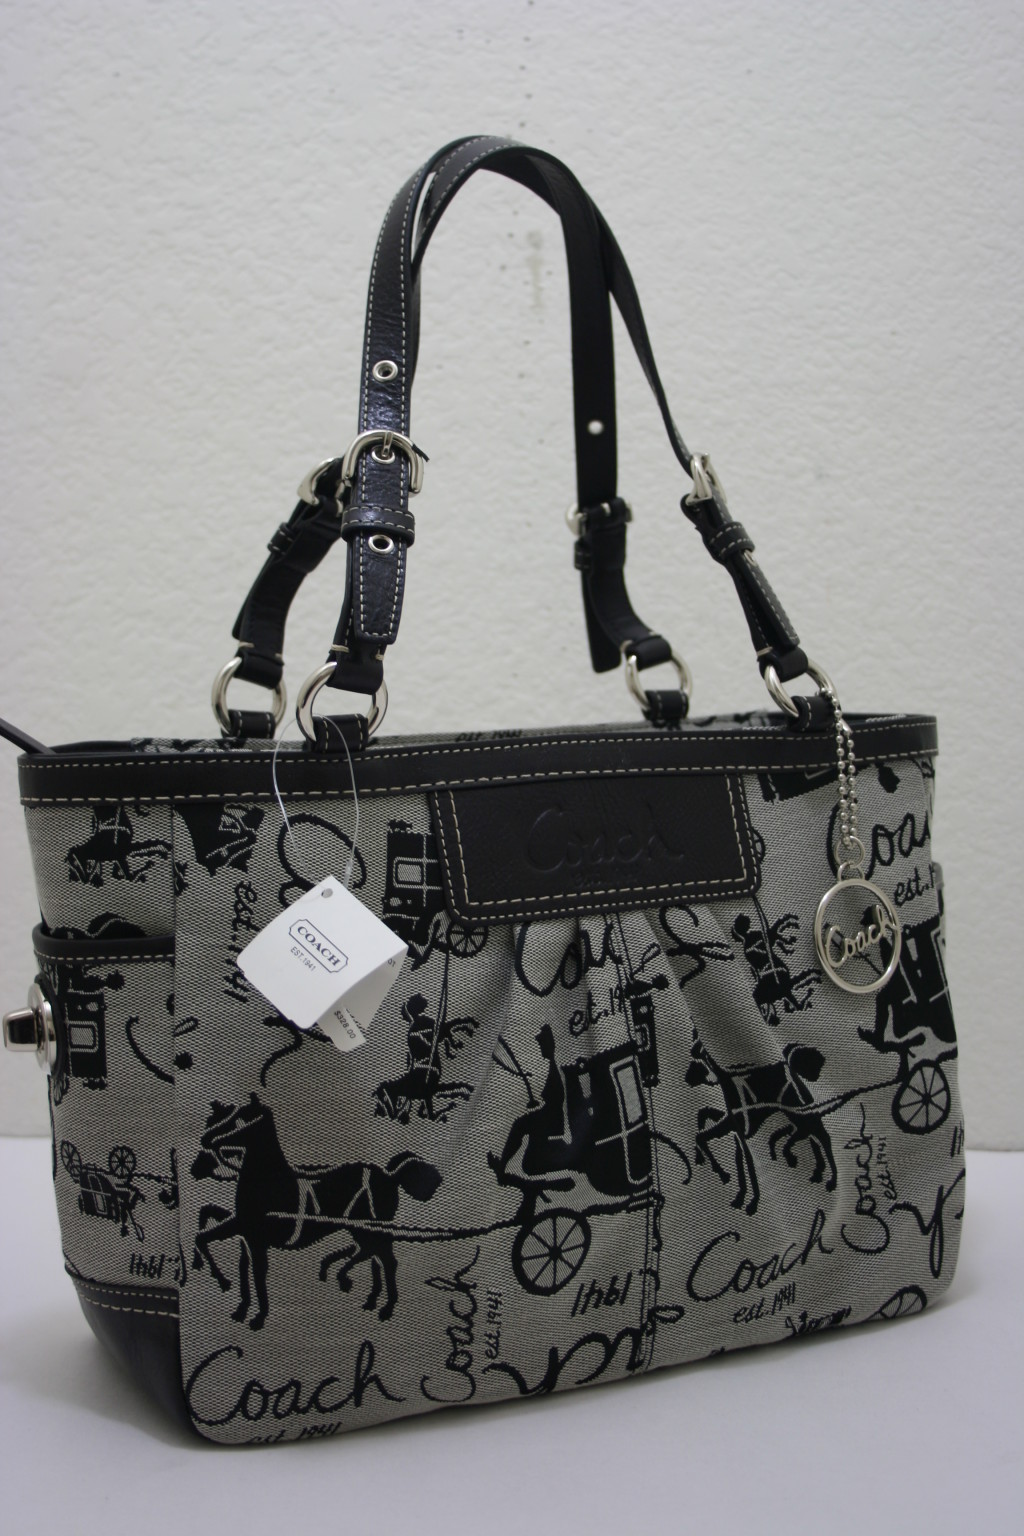 24c7178510 ... promo code coach horse carriage pleated east west gallery tote shoulder  bag 14629 e8c37 bd6ec